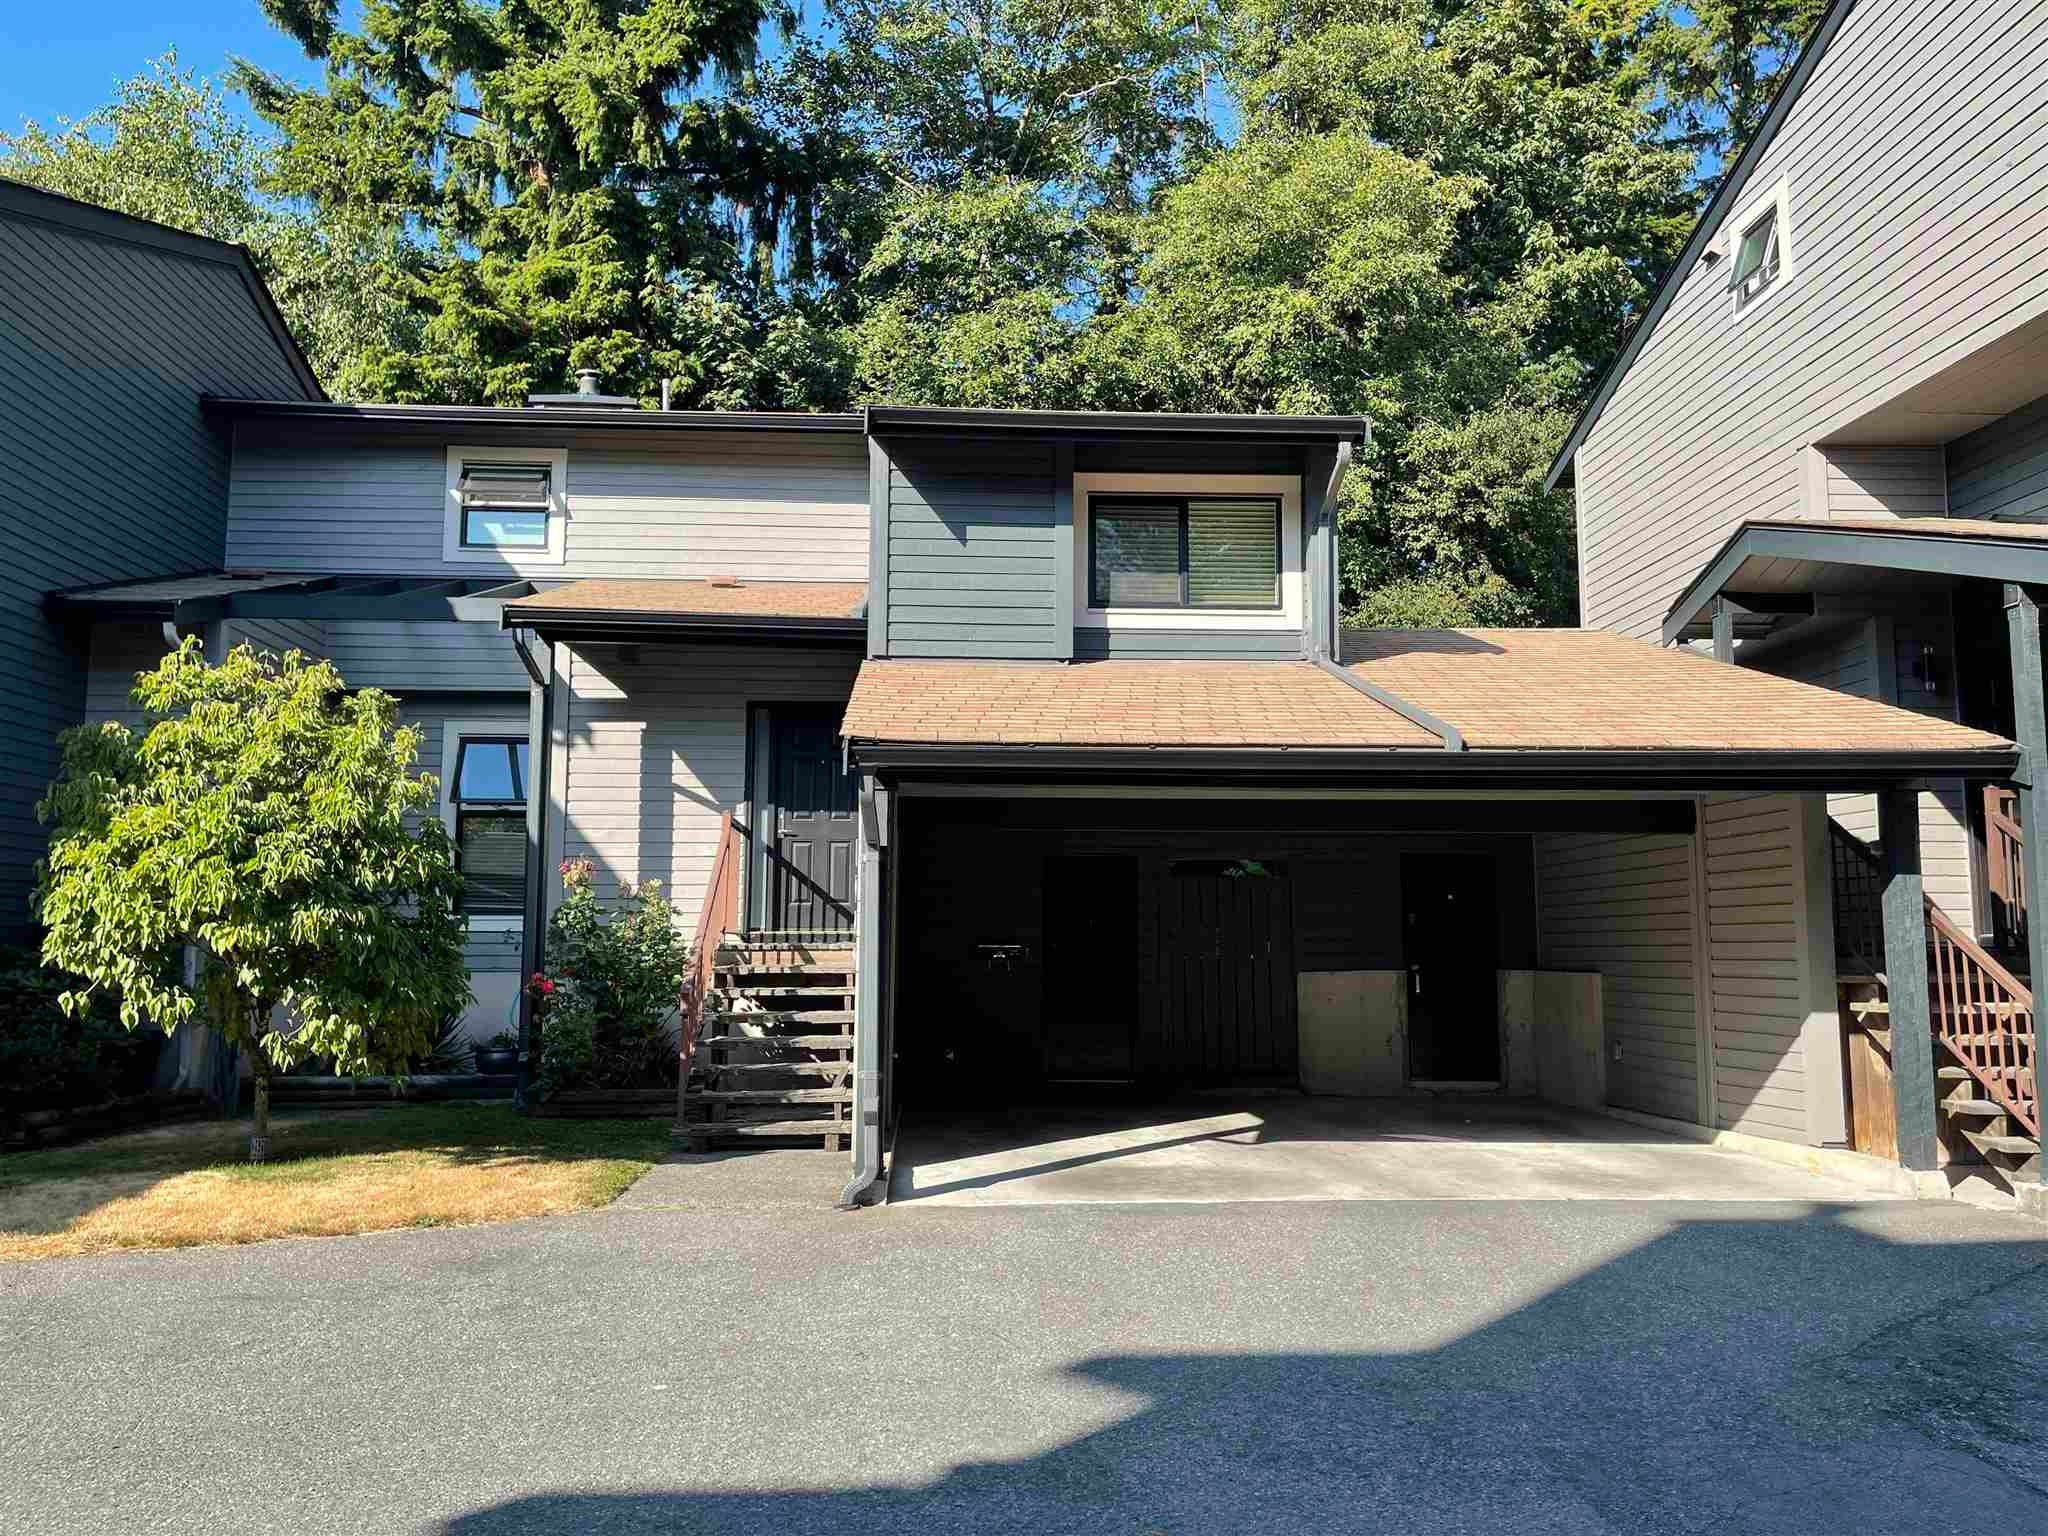 7359 PINNACLE COURT - Champlain Heights Townhouse for sale, 3 Bedrooms (R2598539) - #1